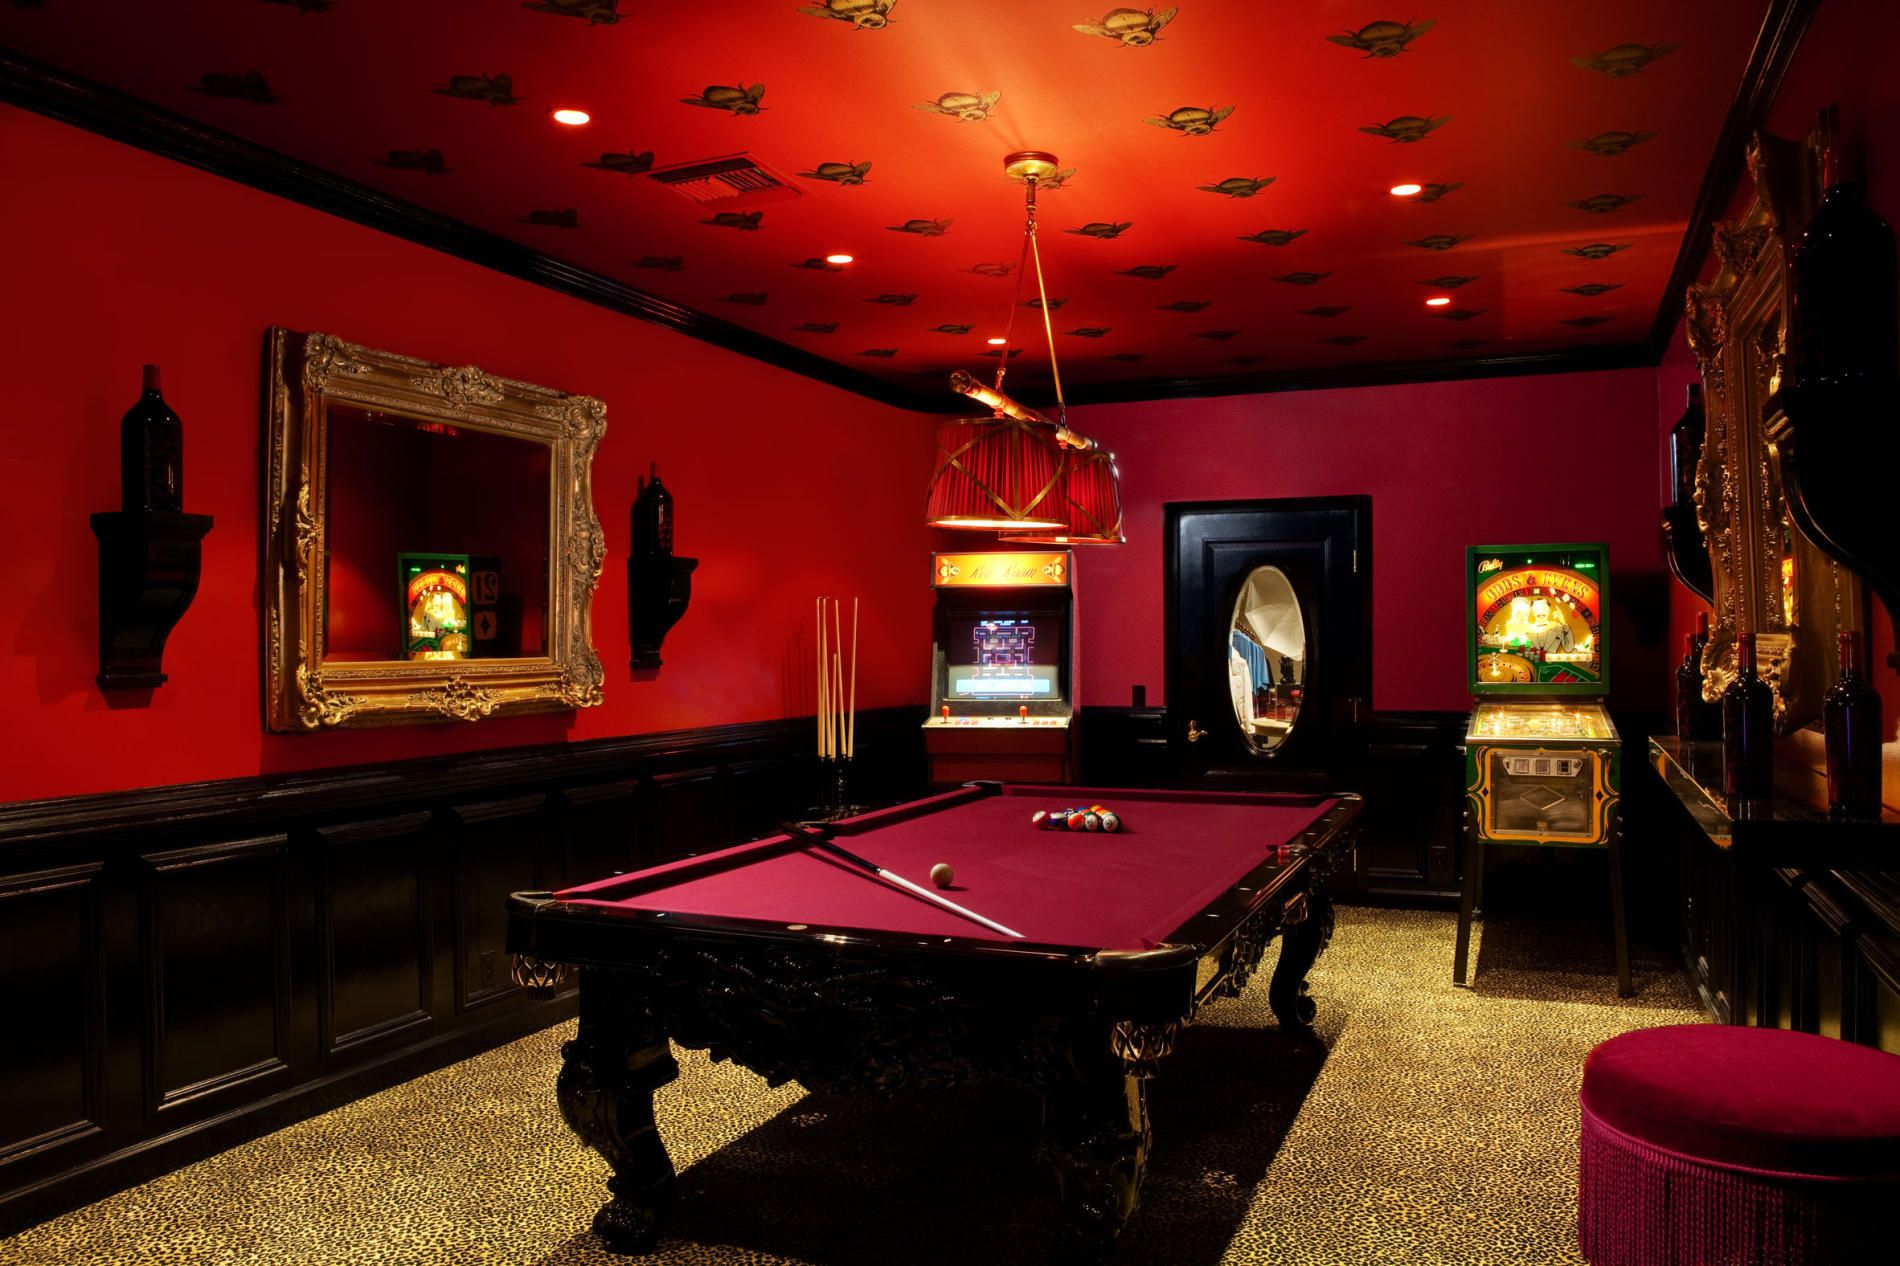 Pool Room Furniture Ideas billiard room design idea wainscoting along the wall for the home decorating ideas pinterest best upholstered walls and poker games ideas Divine Home Billiard Room Design With Maroon Billiard